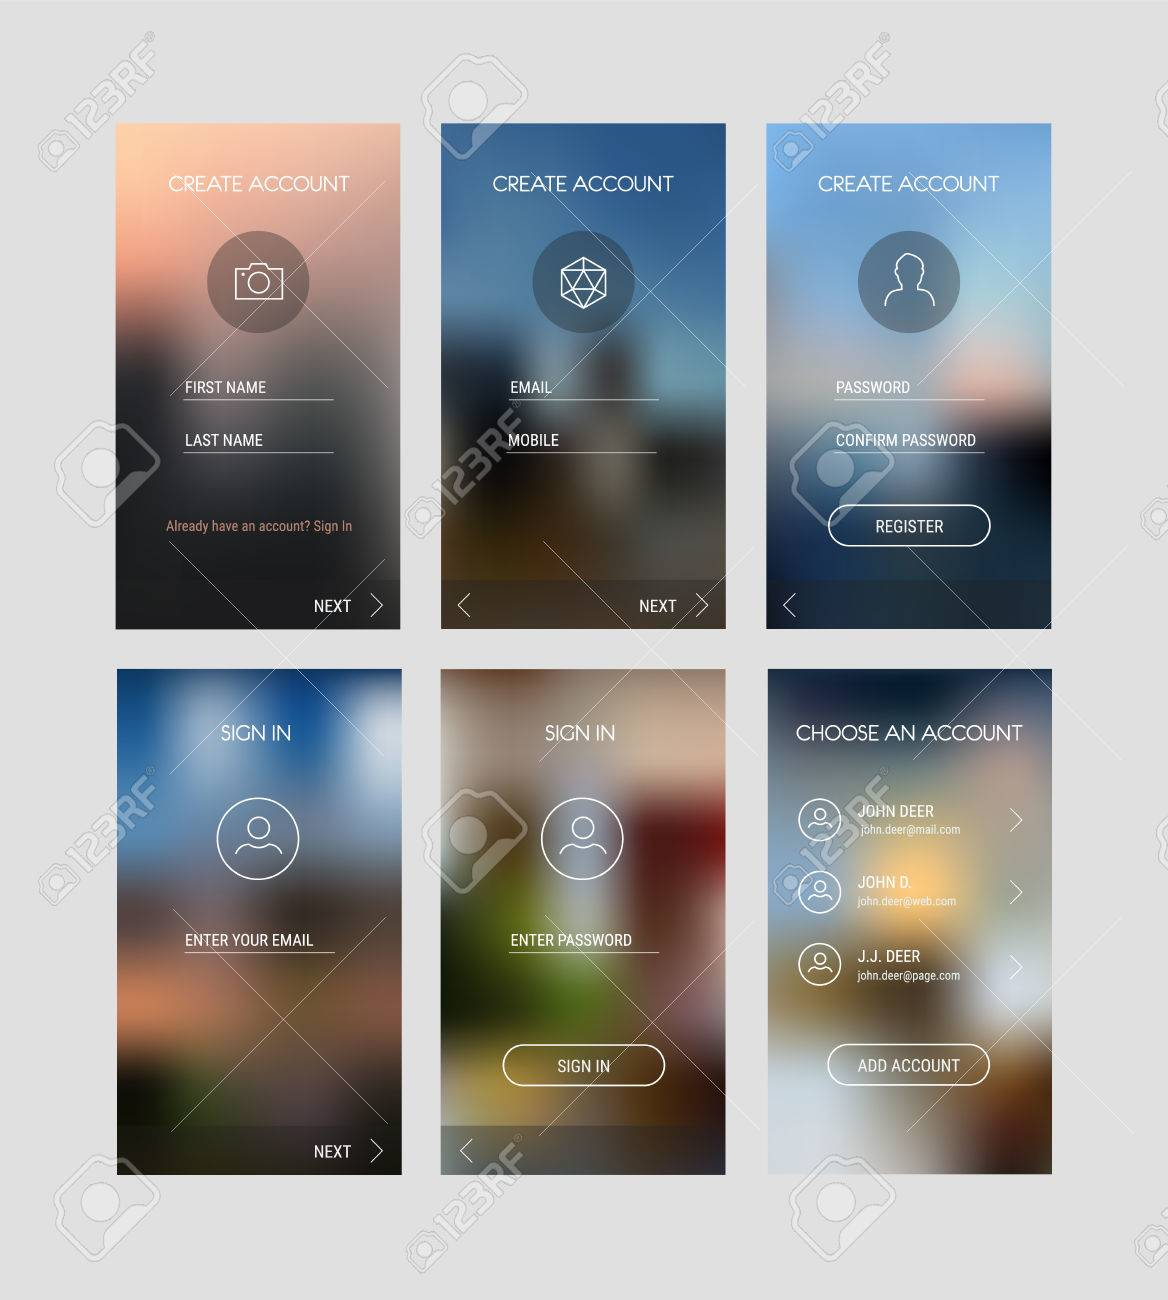 trendy responsive mobile ui templates of login and registration